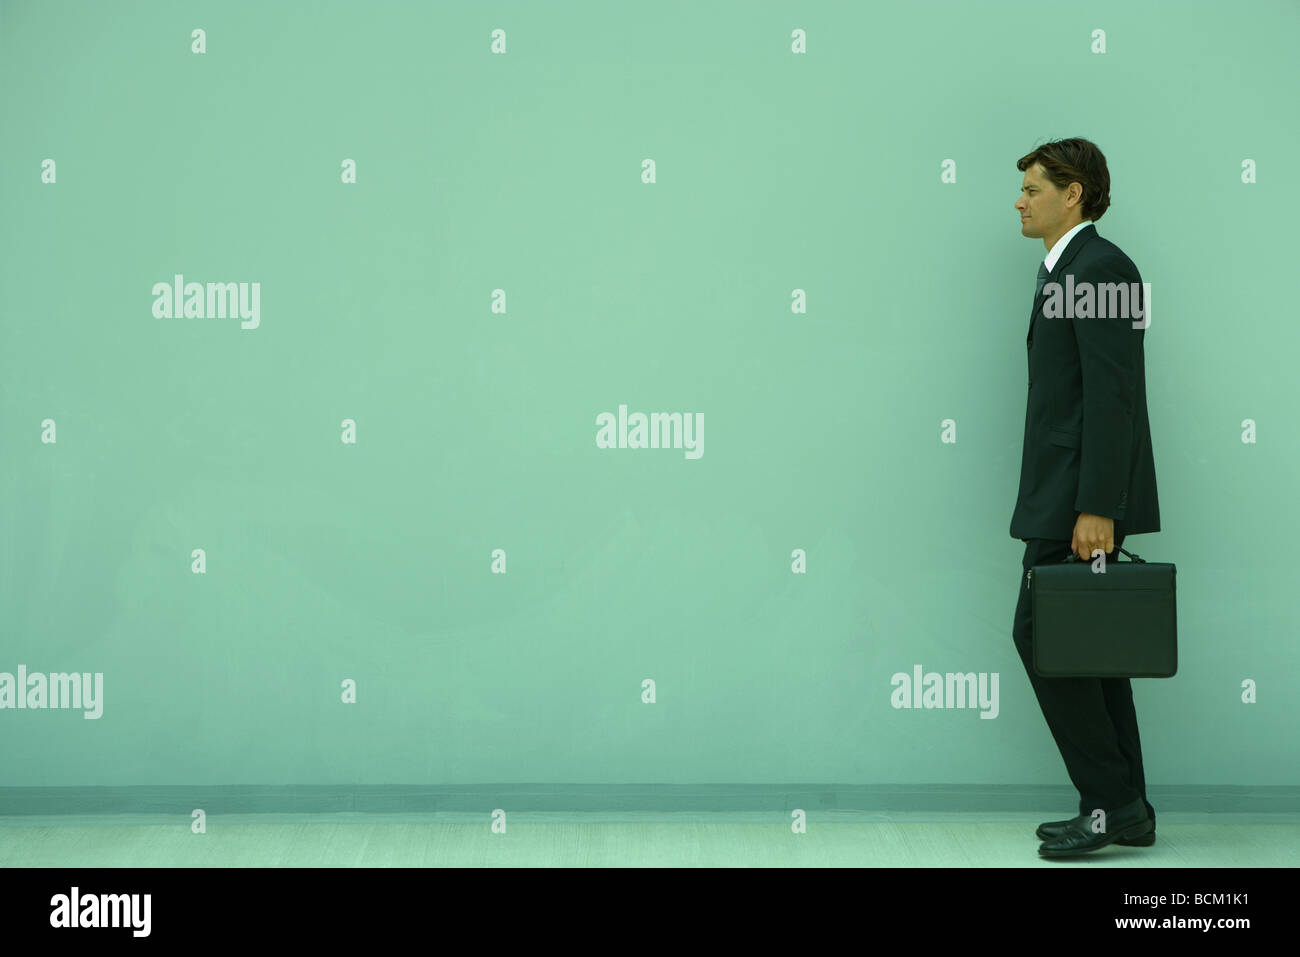 Businessman carrying briefcase, full length, side view - Stock Image